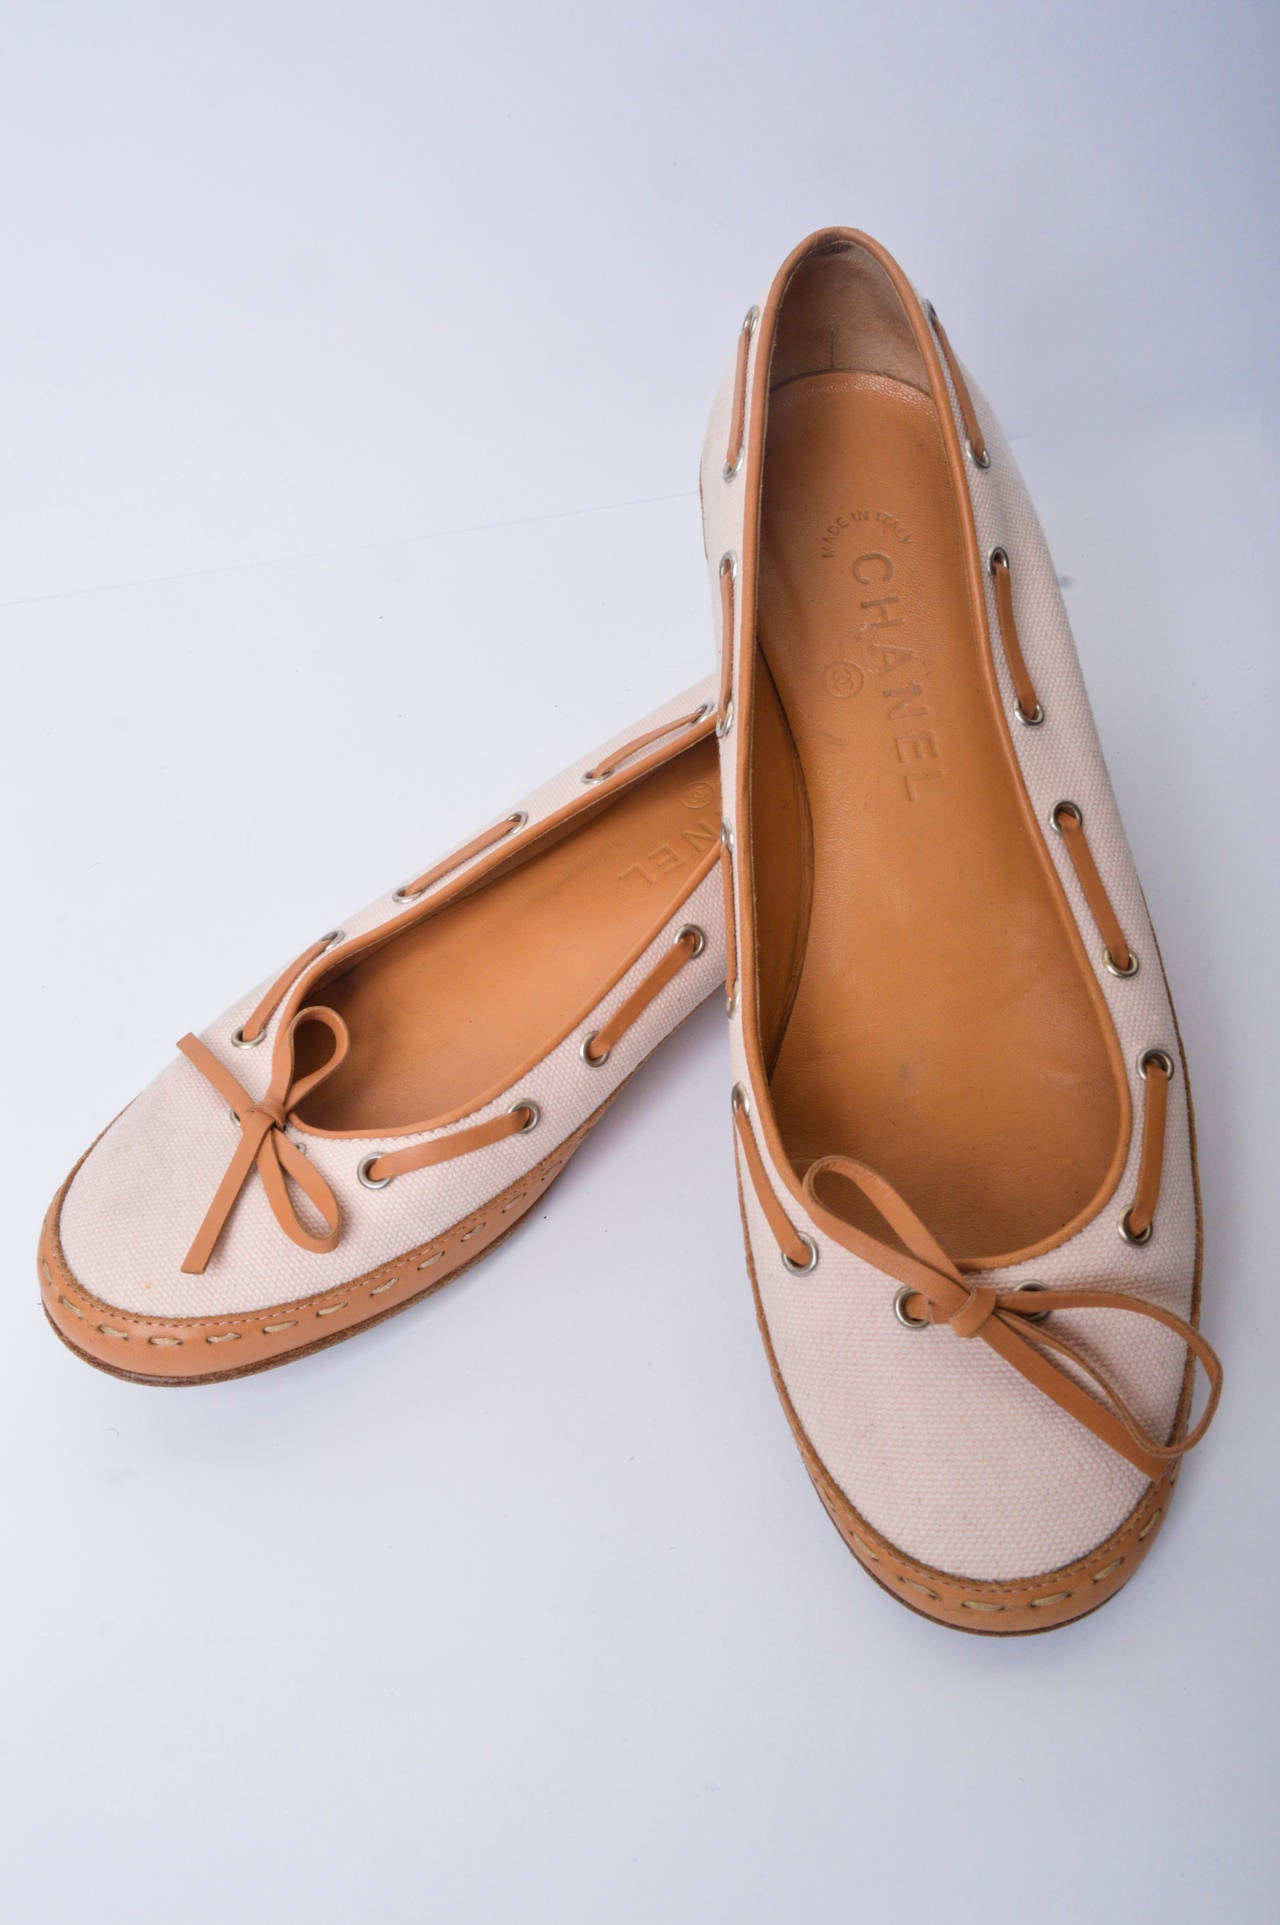 Chanel canvas and leather ballerina flats. Very pale pink canvas uppers with tan leather lacing. Leather trim and leather soles. Marked size 37.